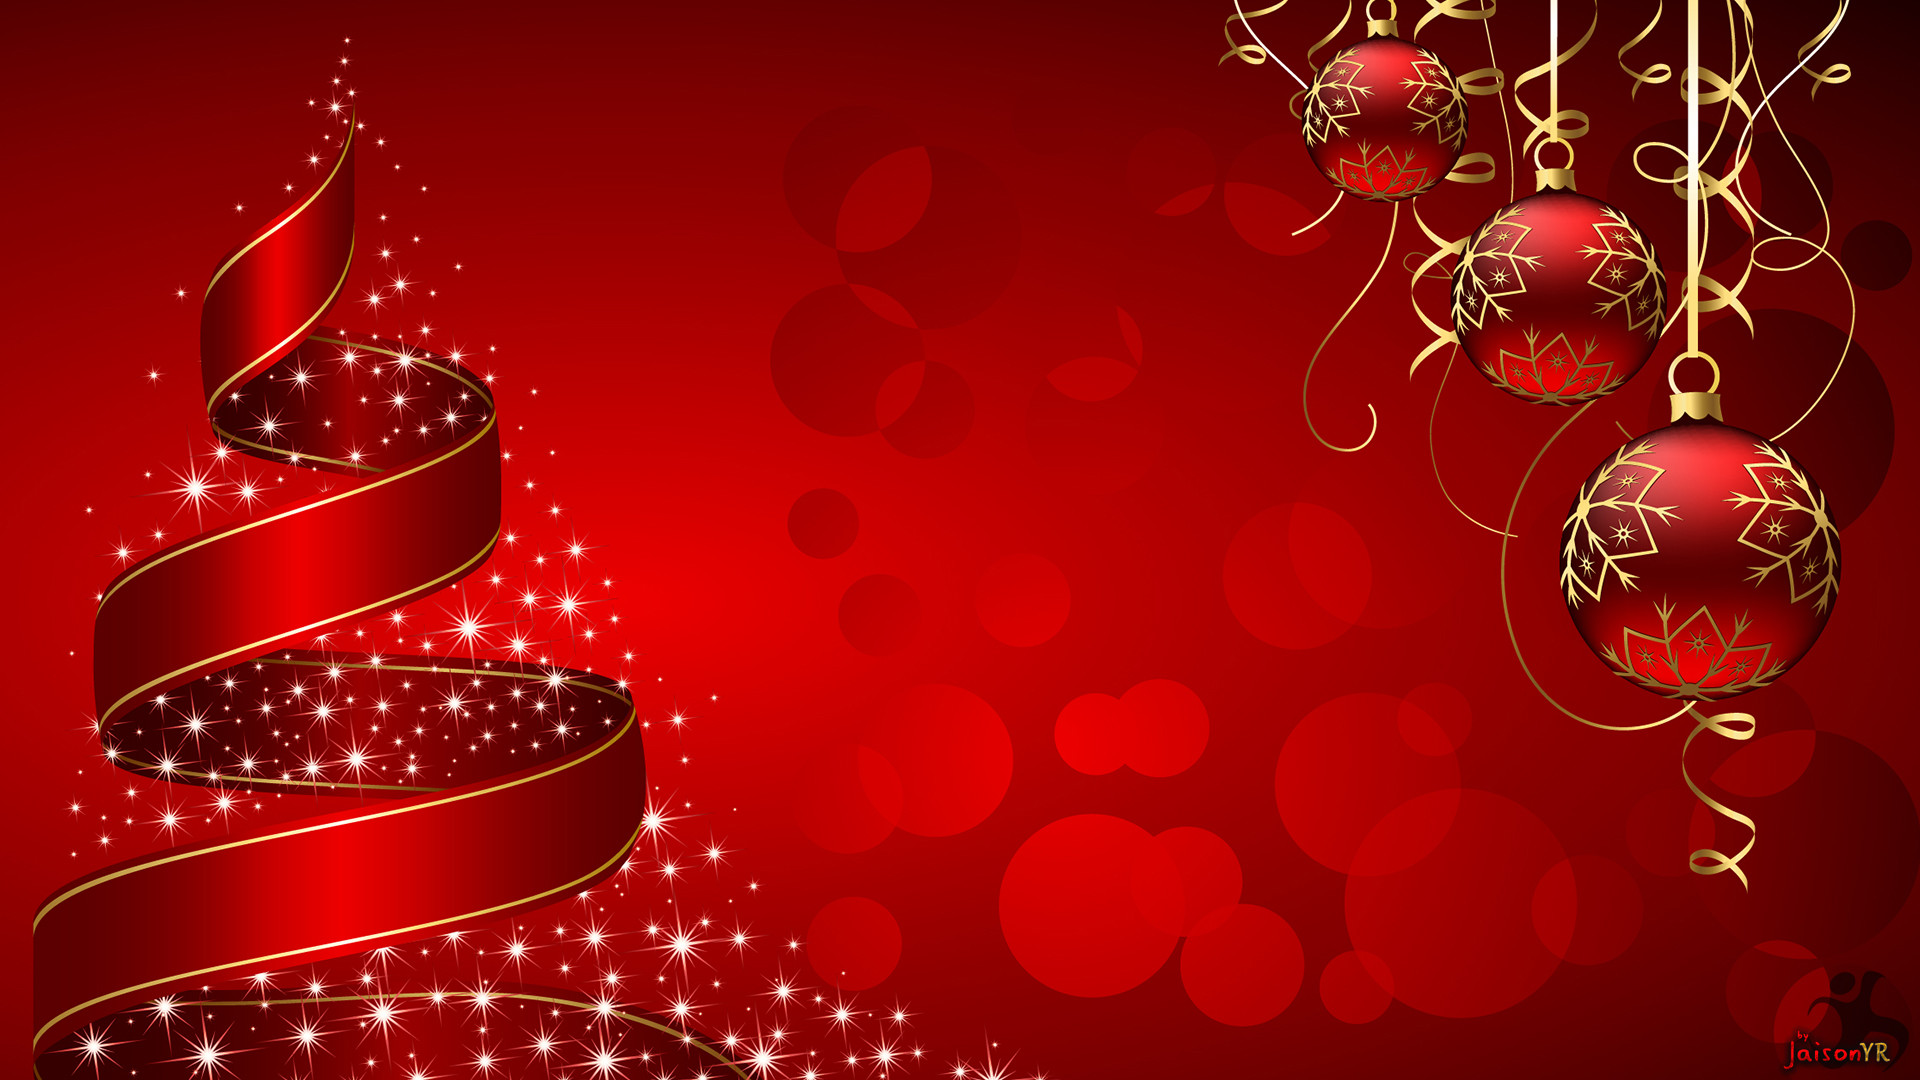 1920x1080 Christmas Tree Wallpaper | FREE Christmas Tree Wallpaper | Christmas  Wallpapers | #11